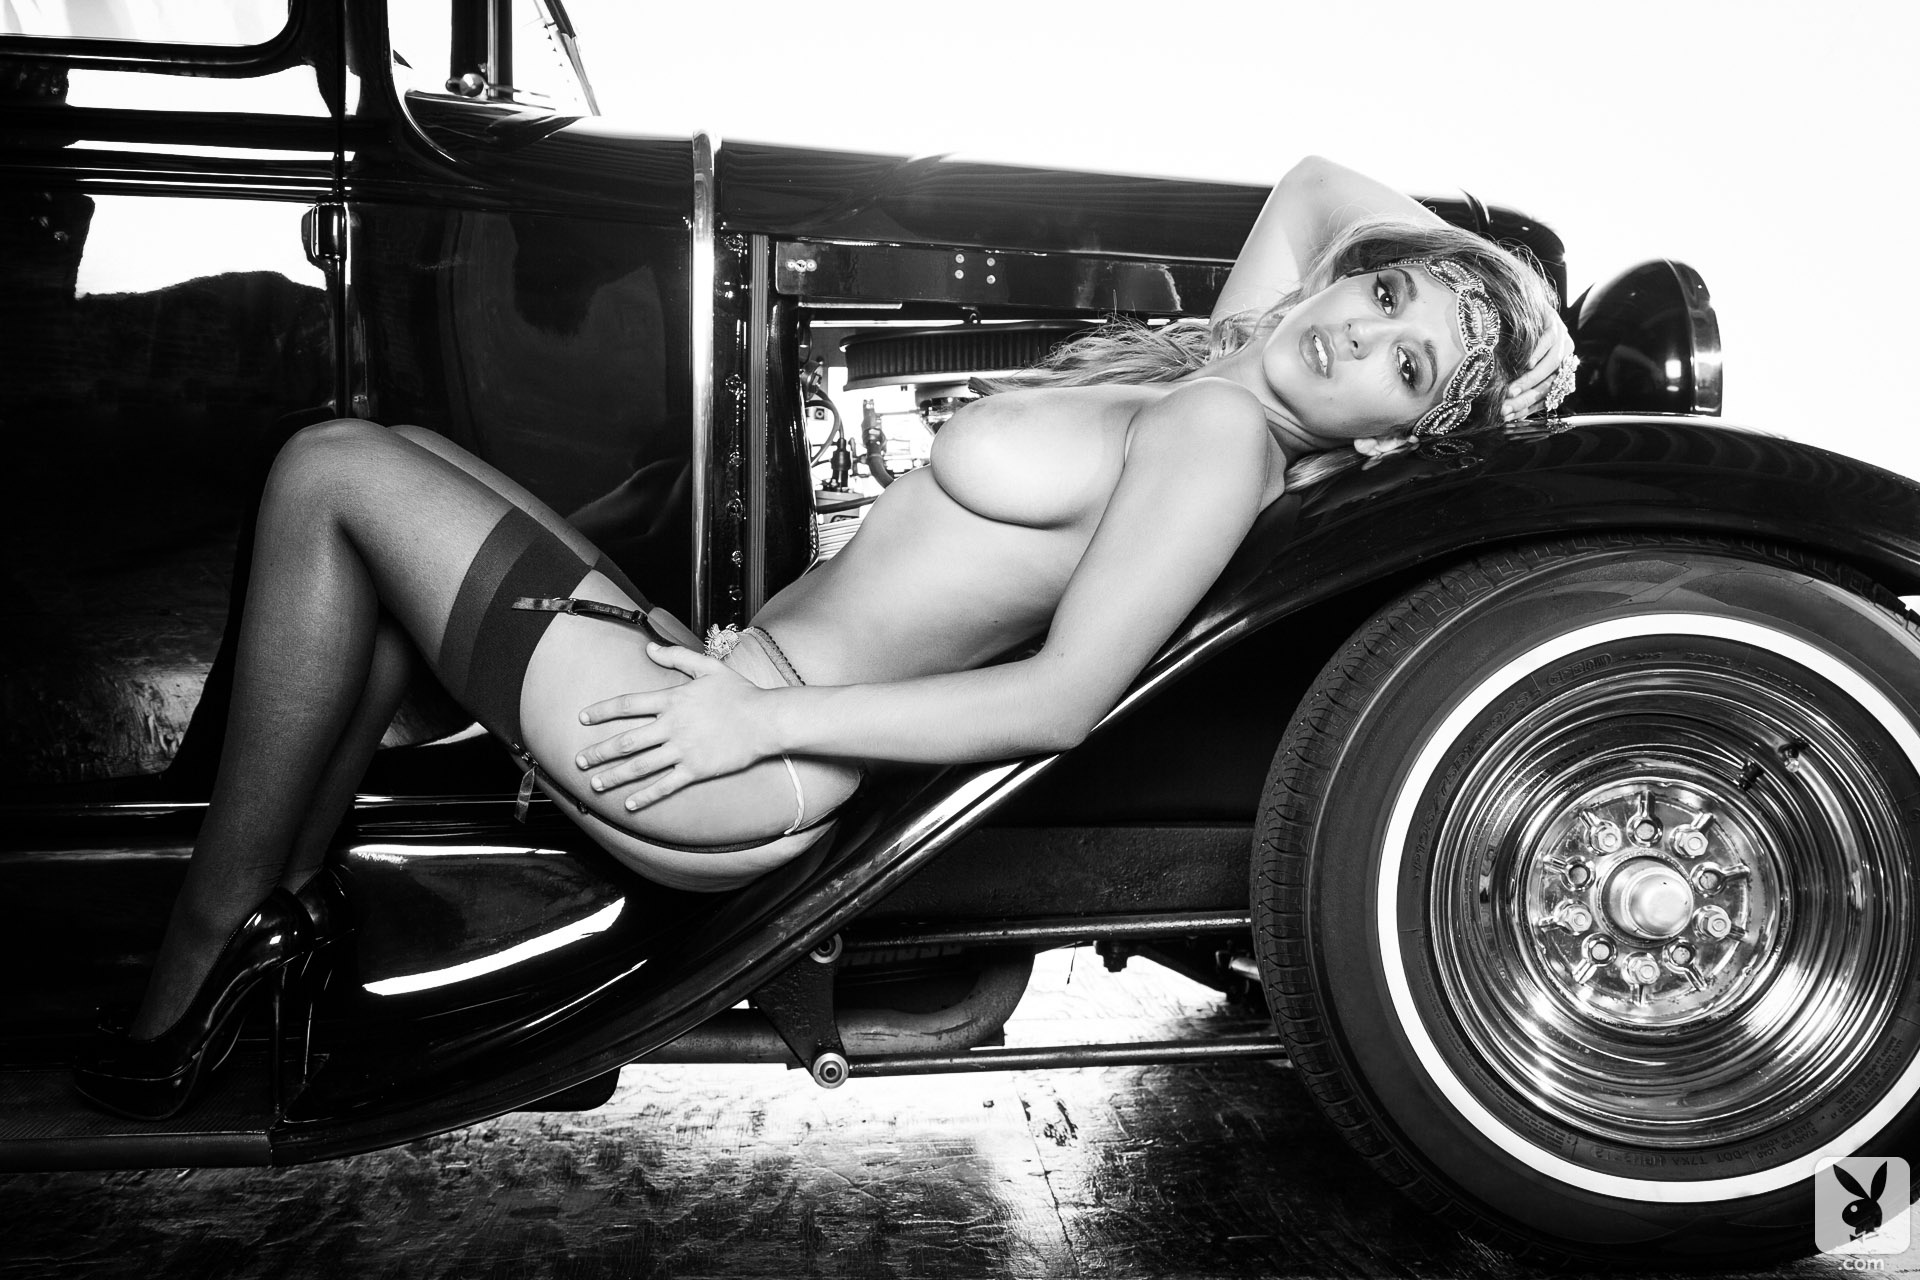 Naked hot vintage girls and hot rods — photo 10